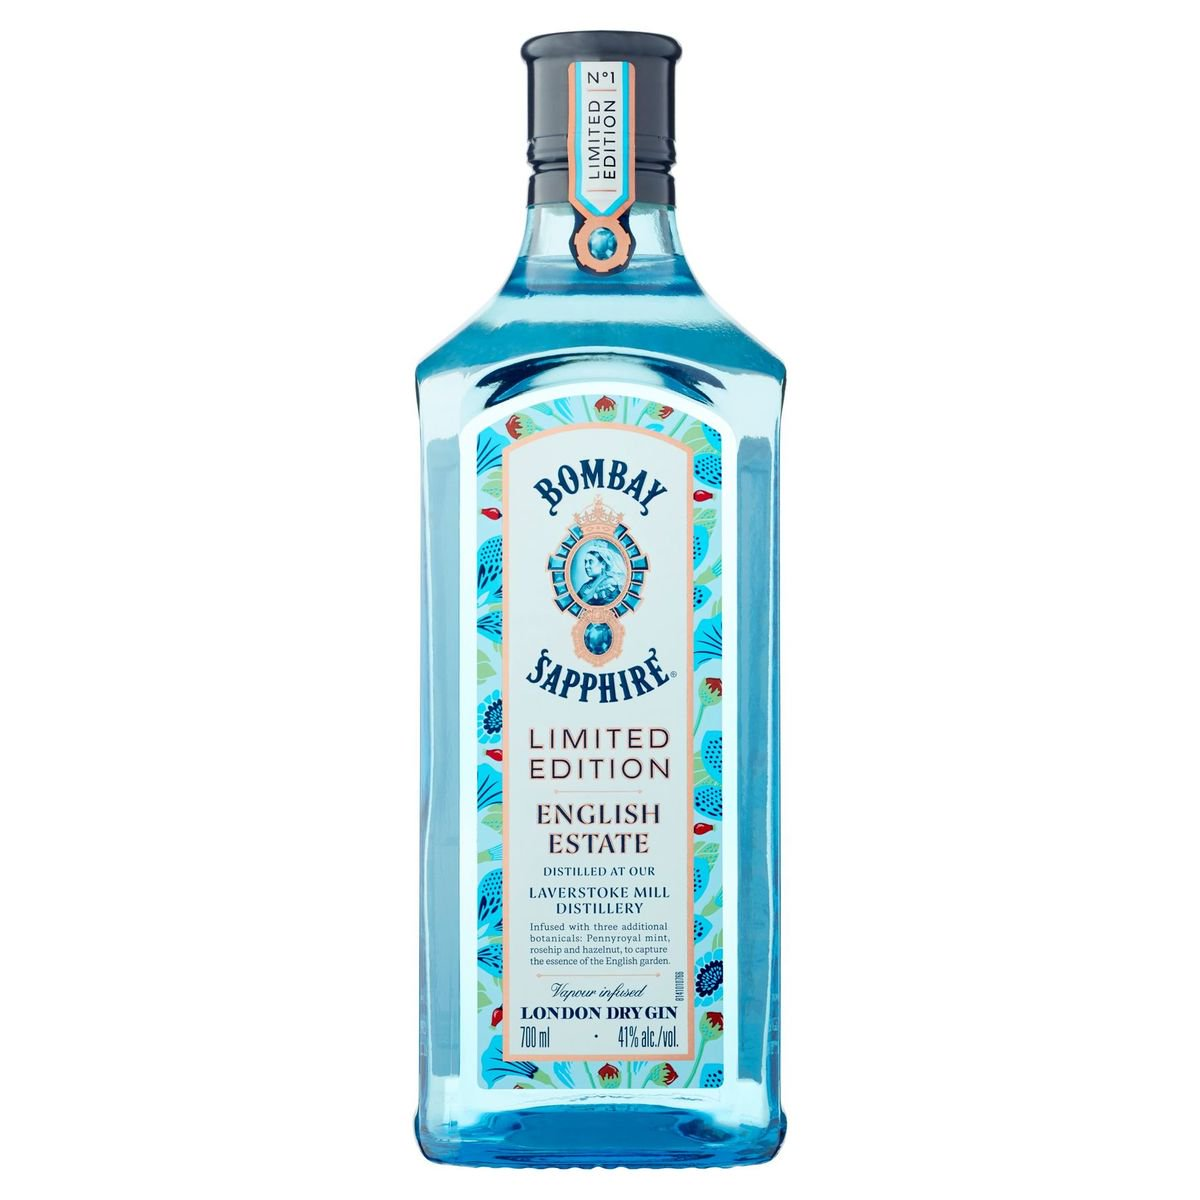 Bombay Sapphire English Estate London Dry Gin Limited Edition 700 ml